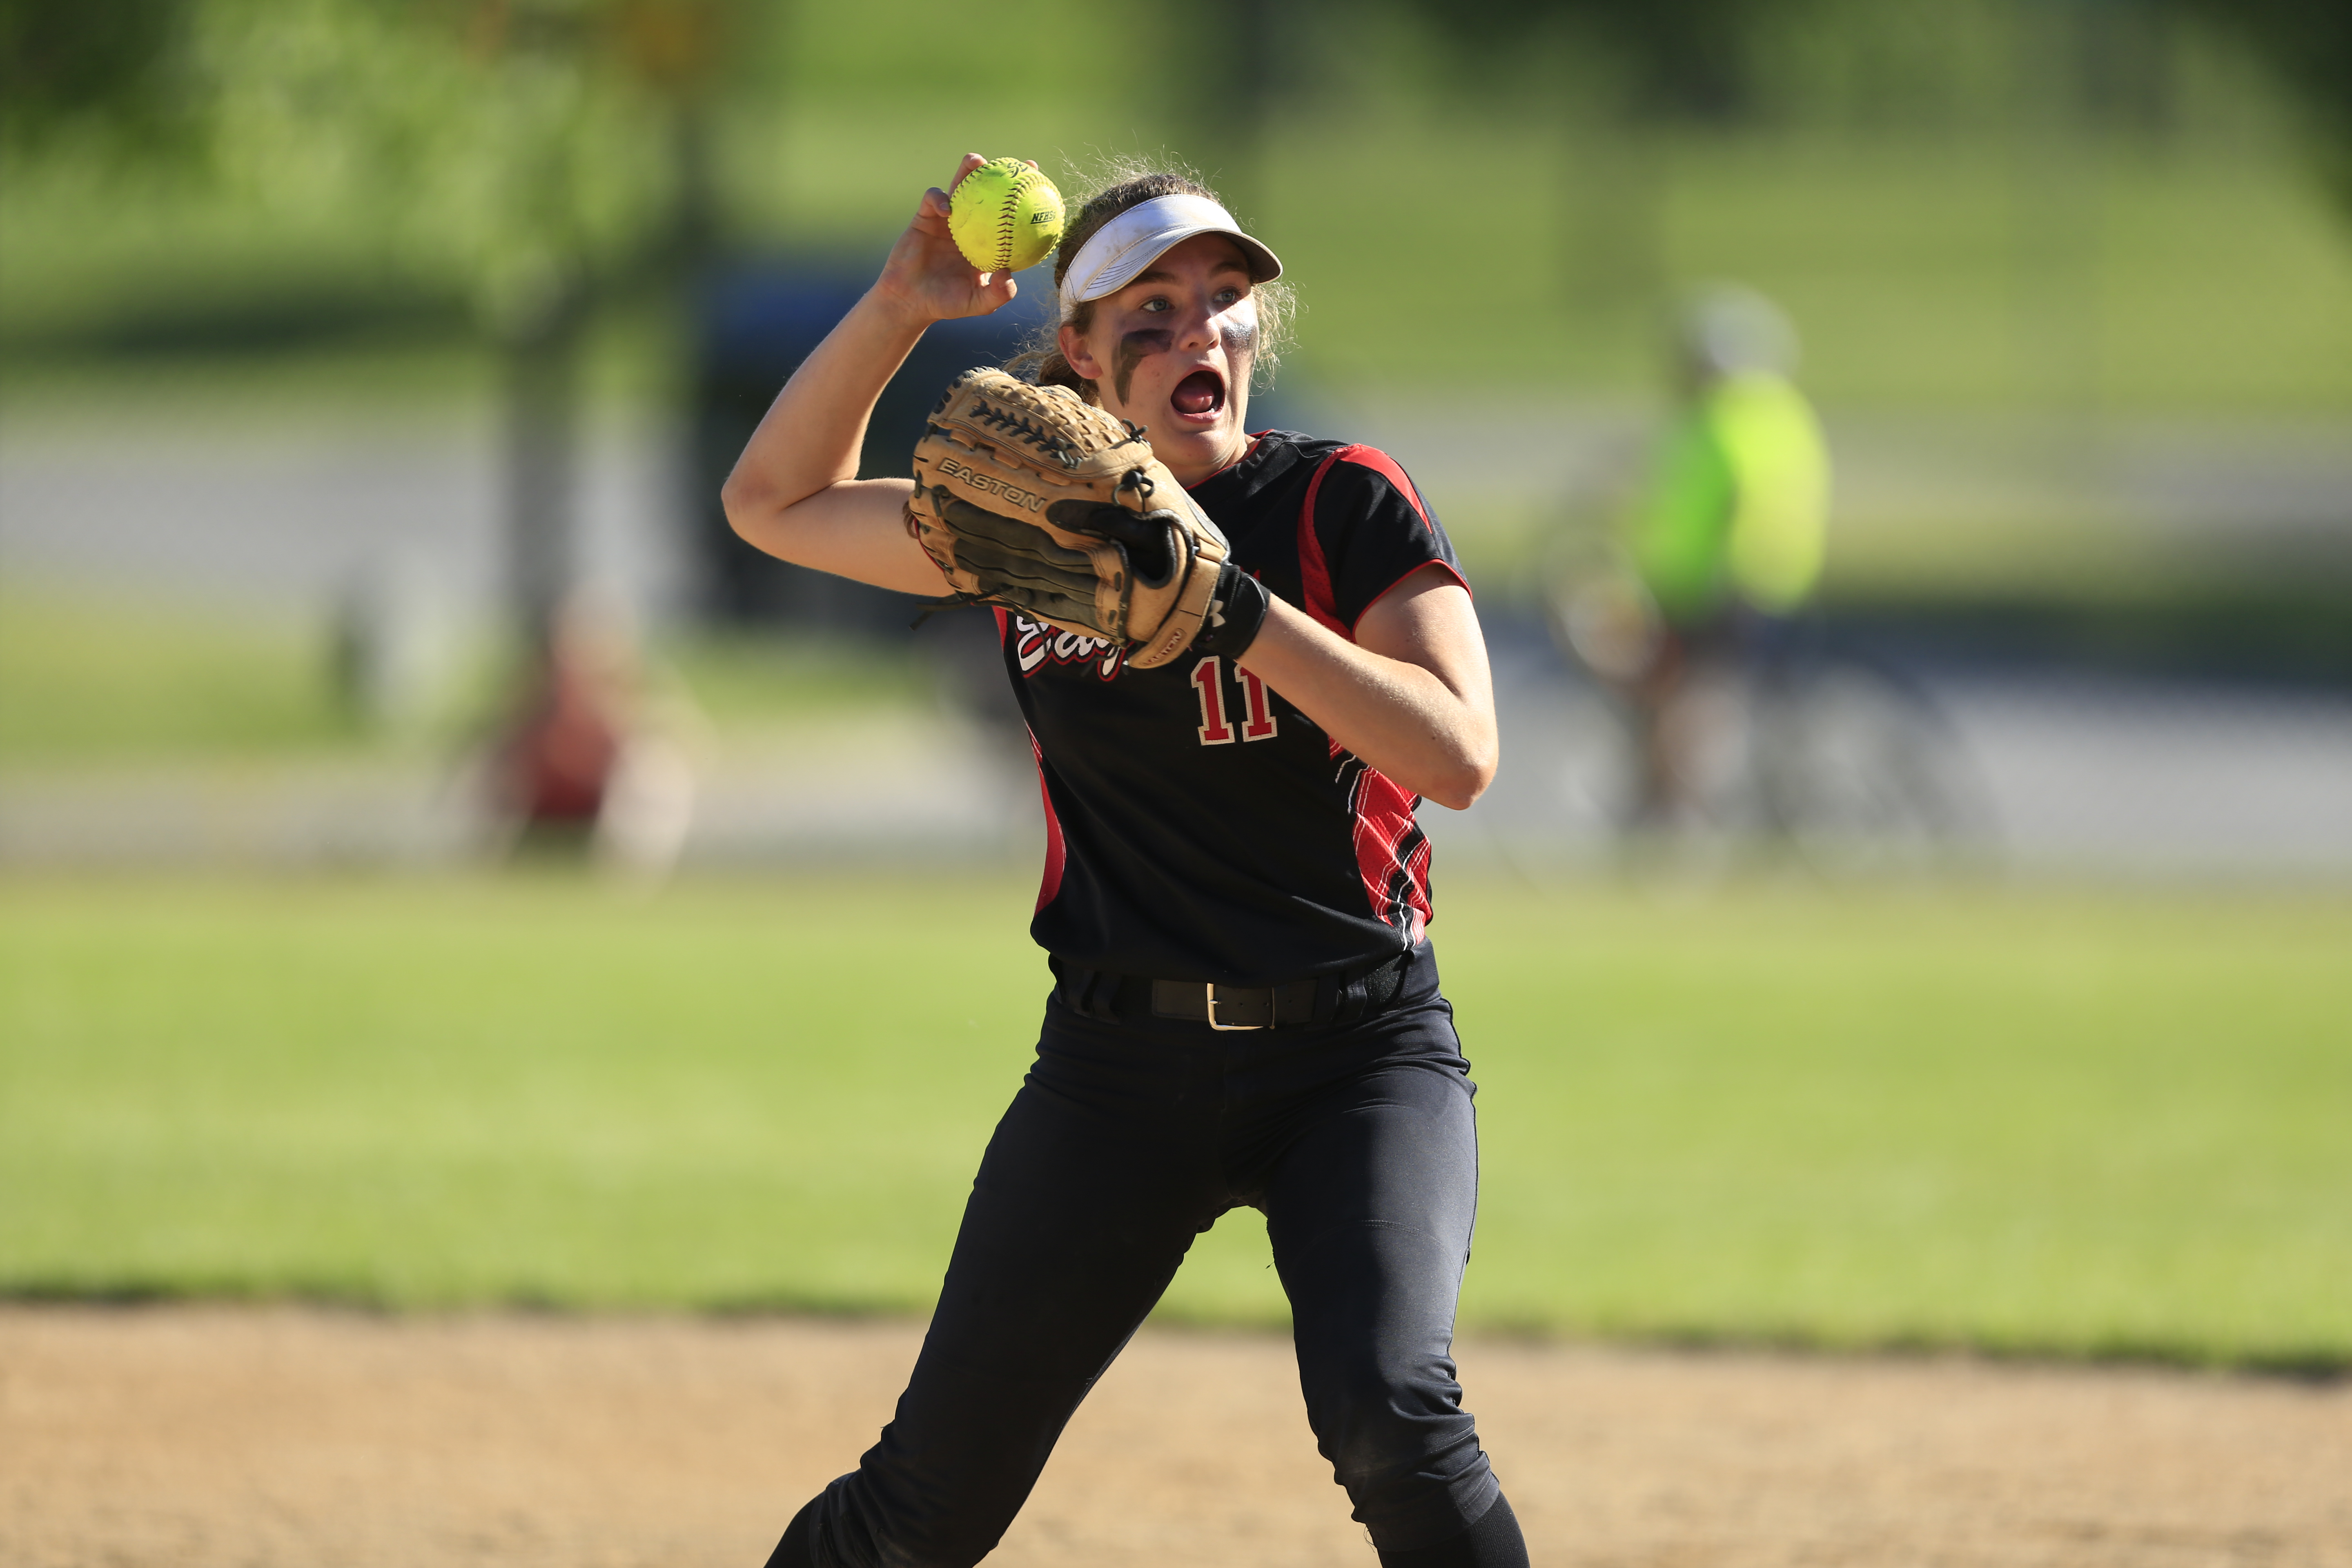 The Eden Prarie Eagle's 2nd basemen, Sydney Shields (11) throws the ball to first base in an attempt to get an out. Eden Prairie lost 3-6 at home. Photo by Chris Juhn